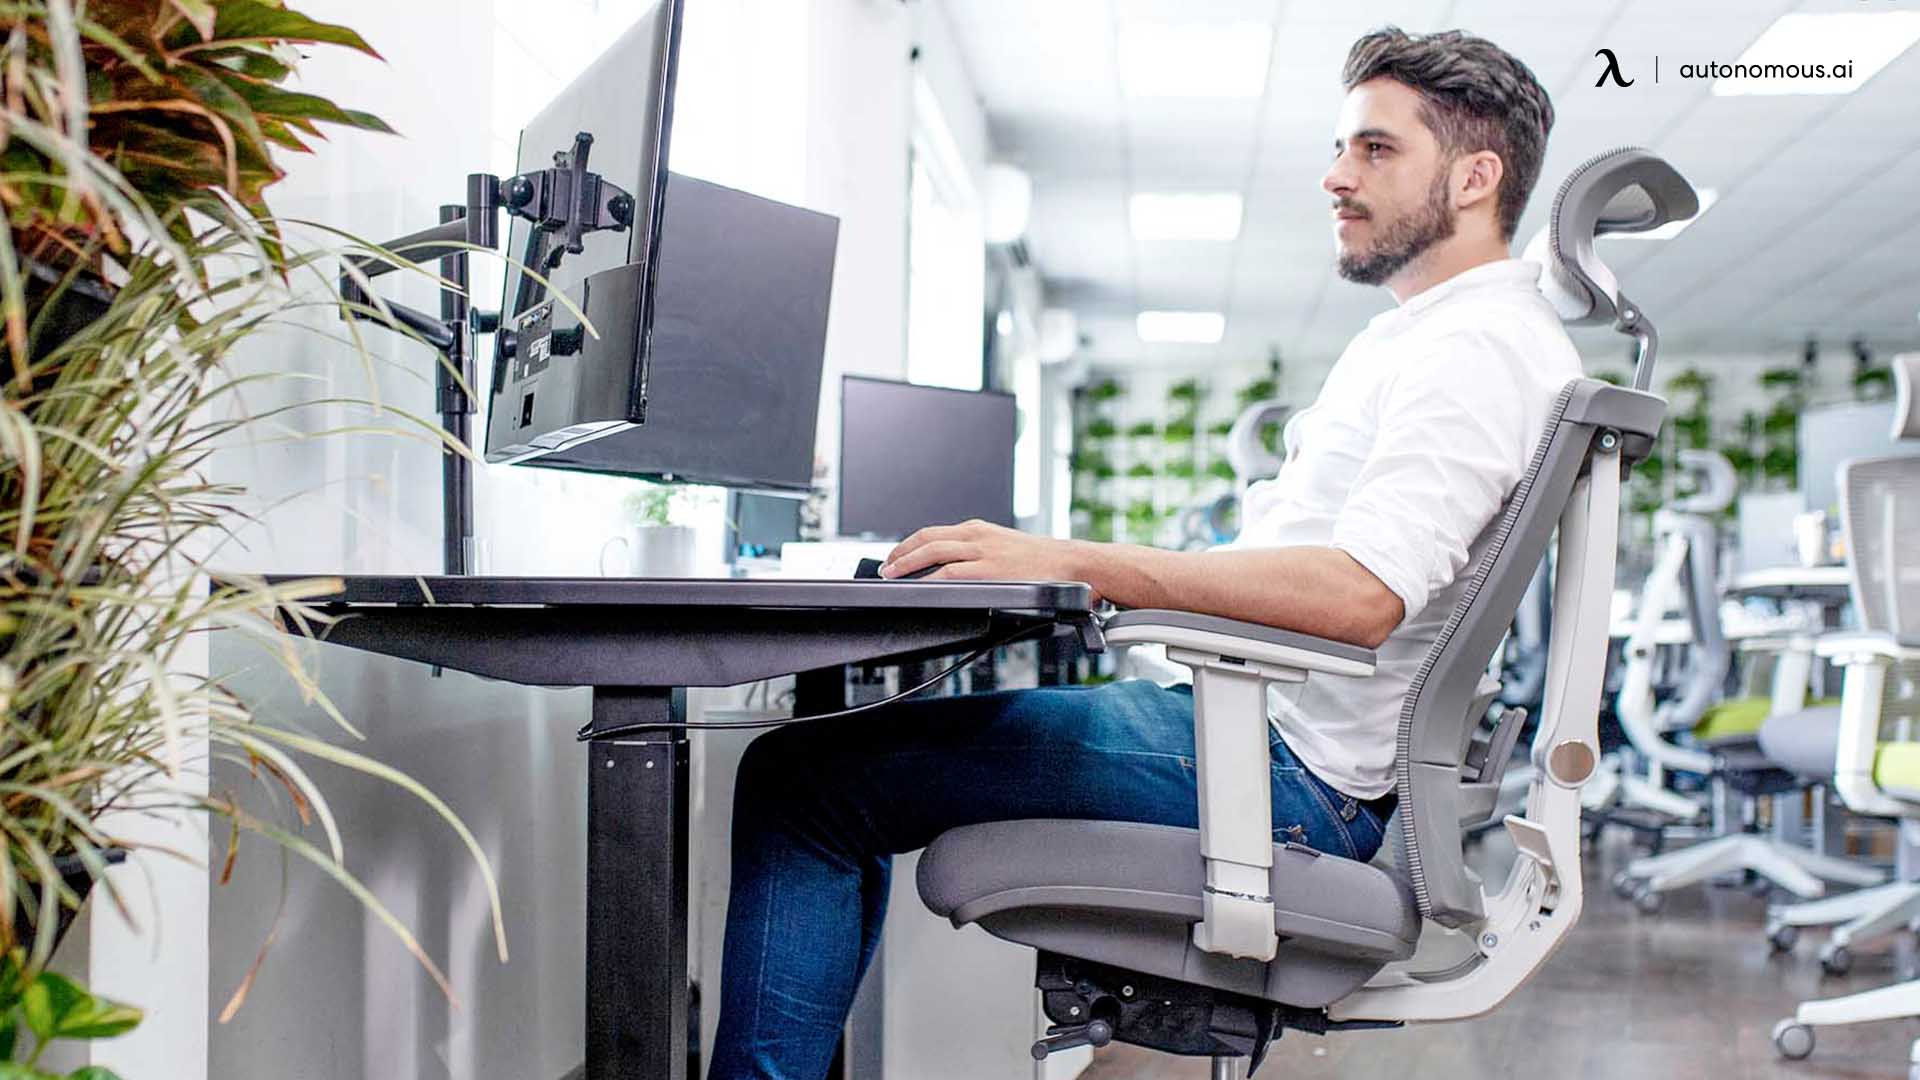 How Do You Sit Properly in an Ergonomic Chair for Upper Back Pain?